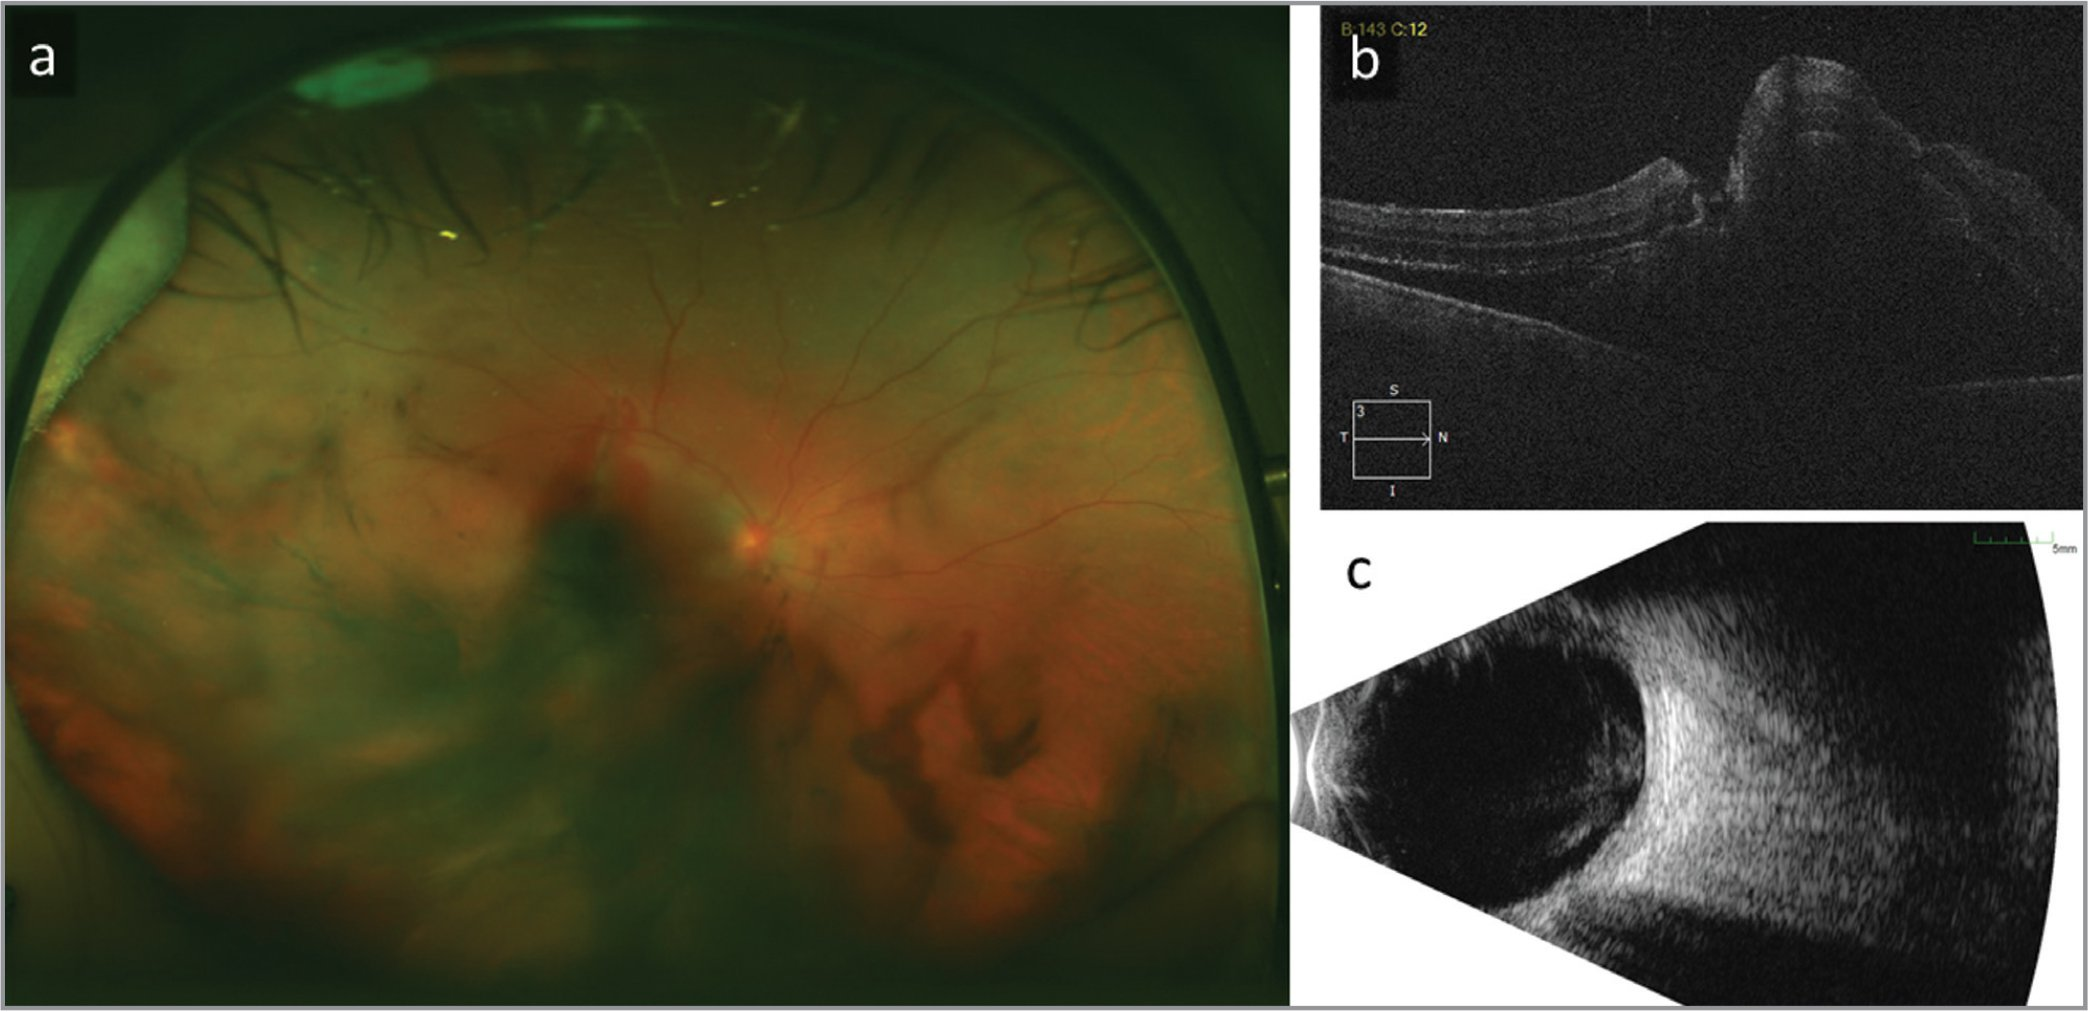 (a) Fundus photo with vitreous, subretinal, and subretinal pigmented epithelial hemorrhage. (b) Optical coherence tomography demonstrates macular detachment with a possible full-thickness macular hole. (c) B-scan ultrasonography displaying mobile vitreous opacities with elevated clumped opacities in the macular but without rhegmatogenous retinal detachment.